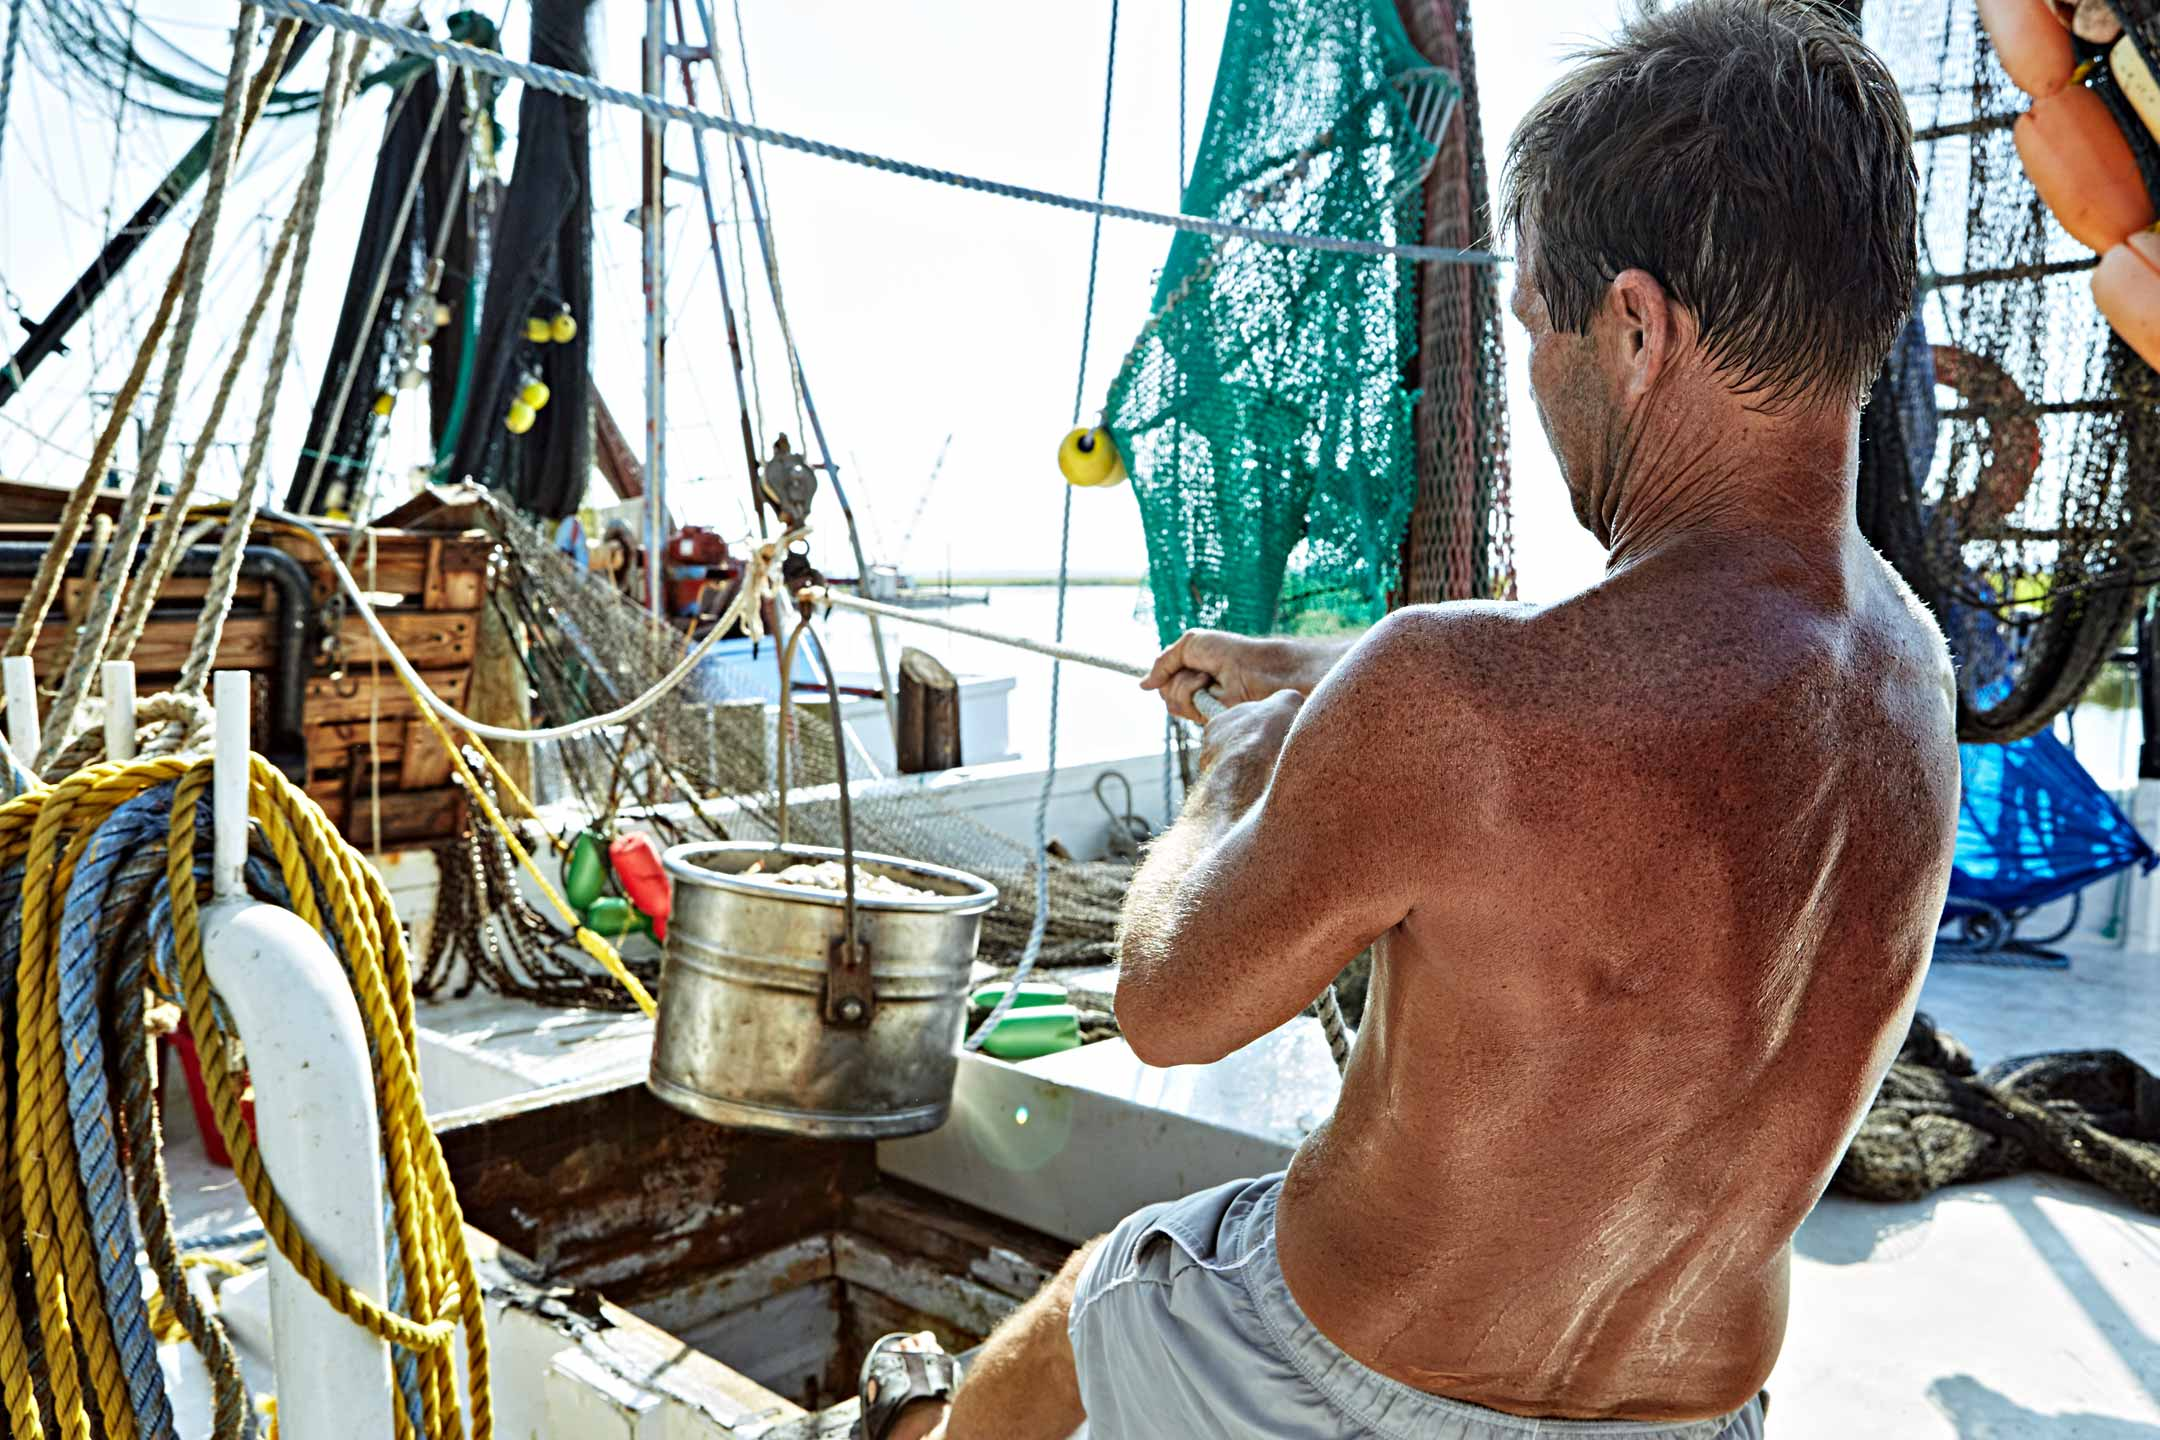 Bare-chested worker pulls on rope, unloading shrimp off boat. Lifestyle photography